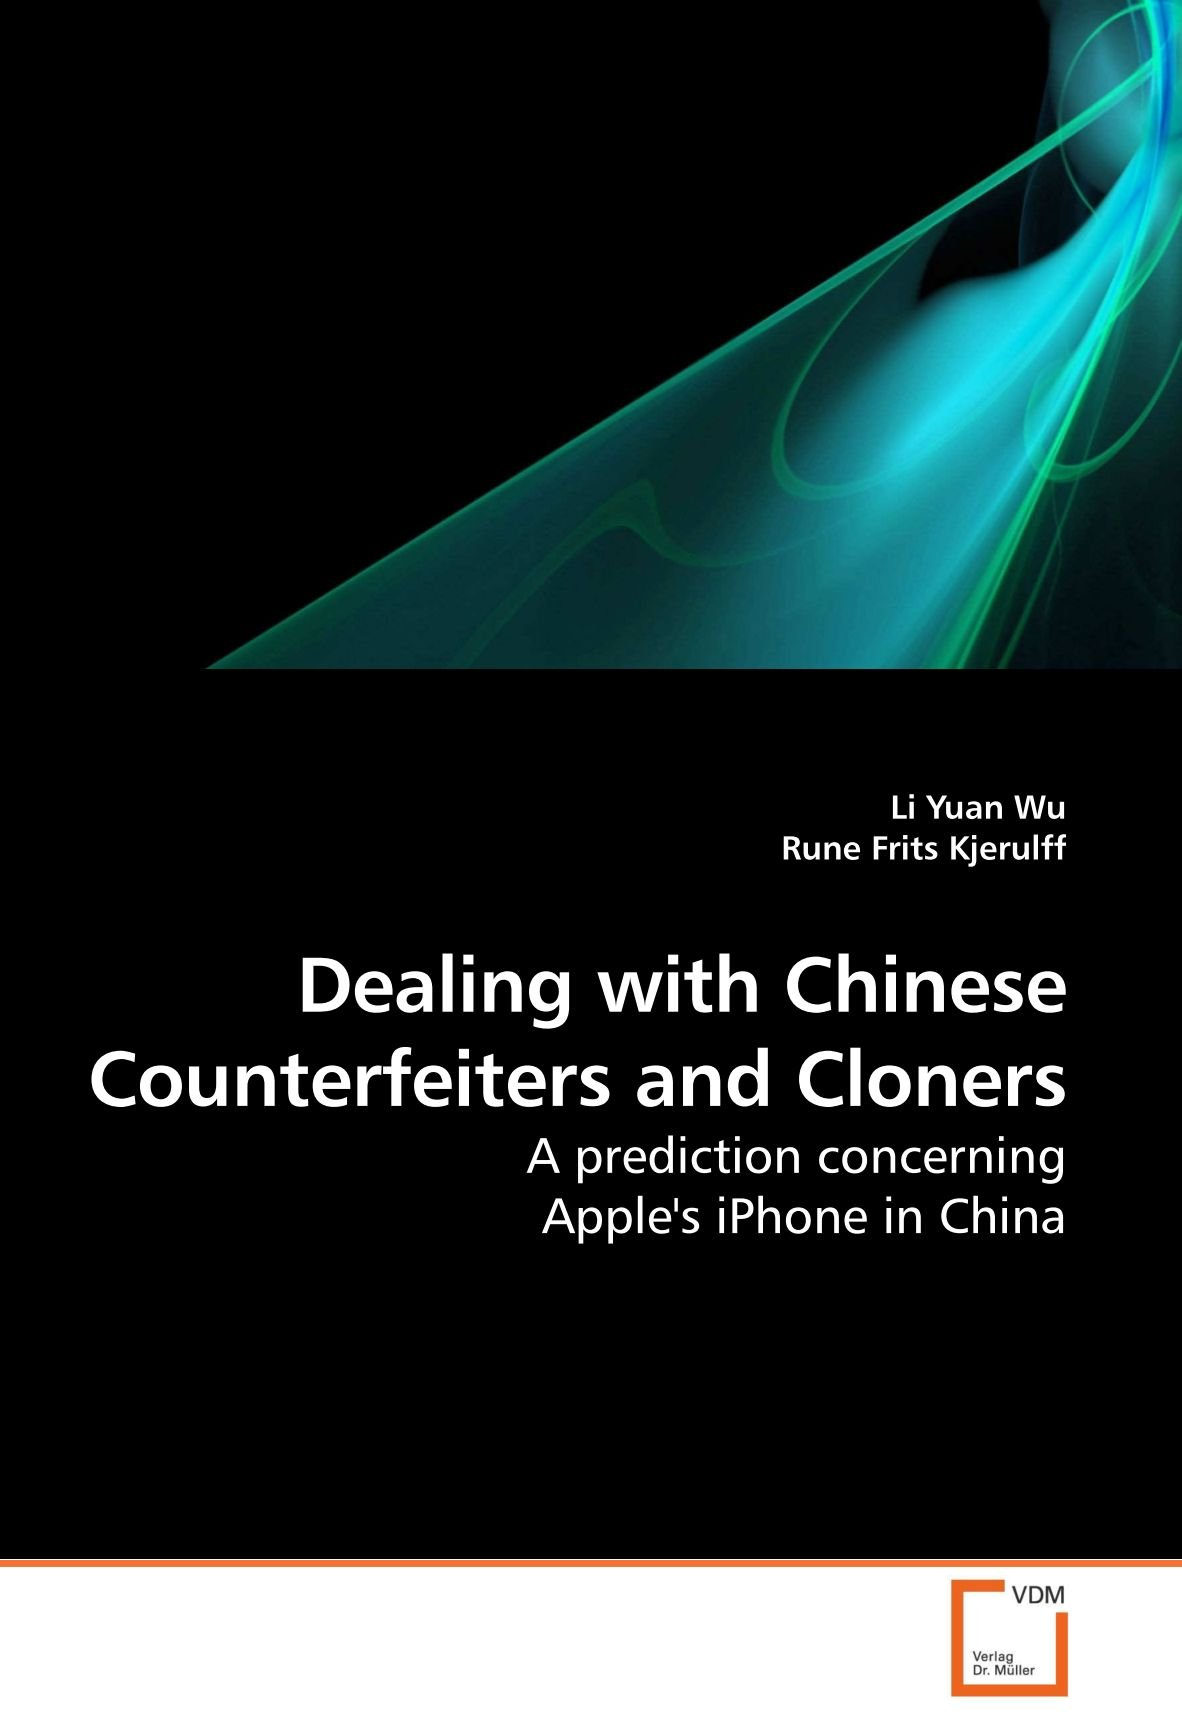 Dealing with Chinese Counterfeiters and Cloners: A prediction concerning Apple's iPhone in China PDF